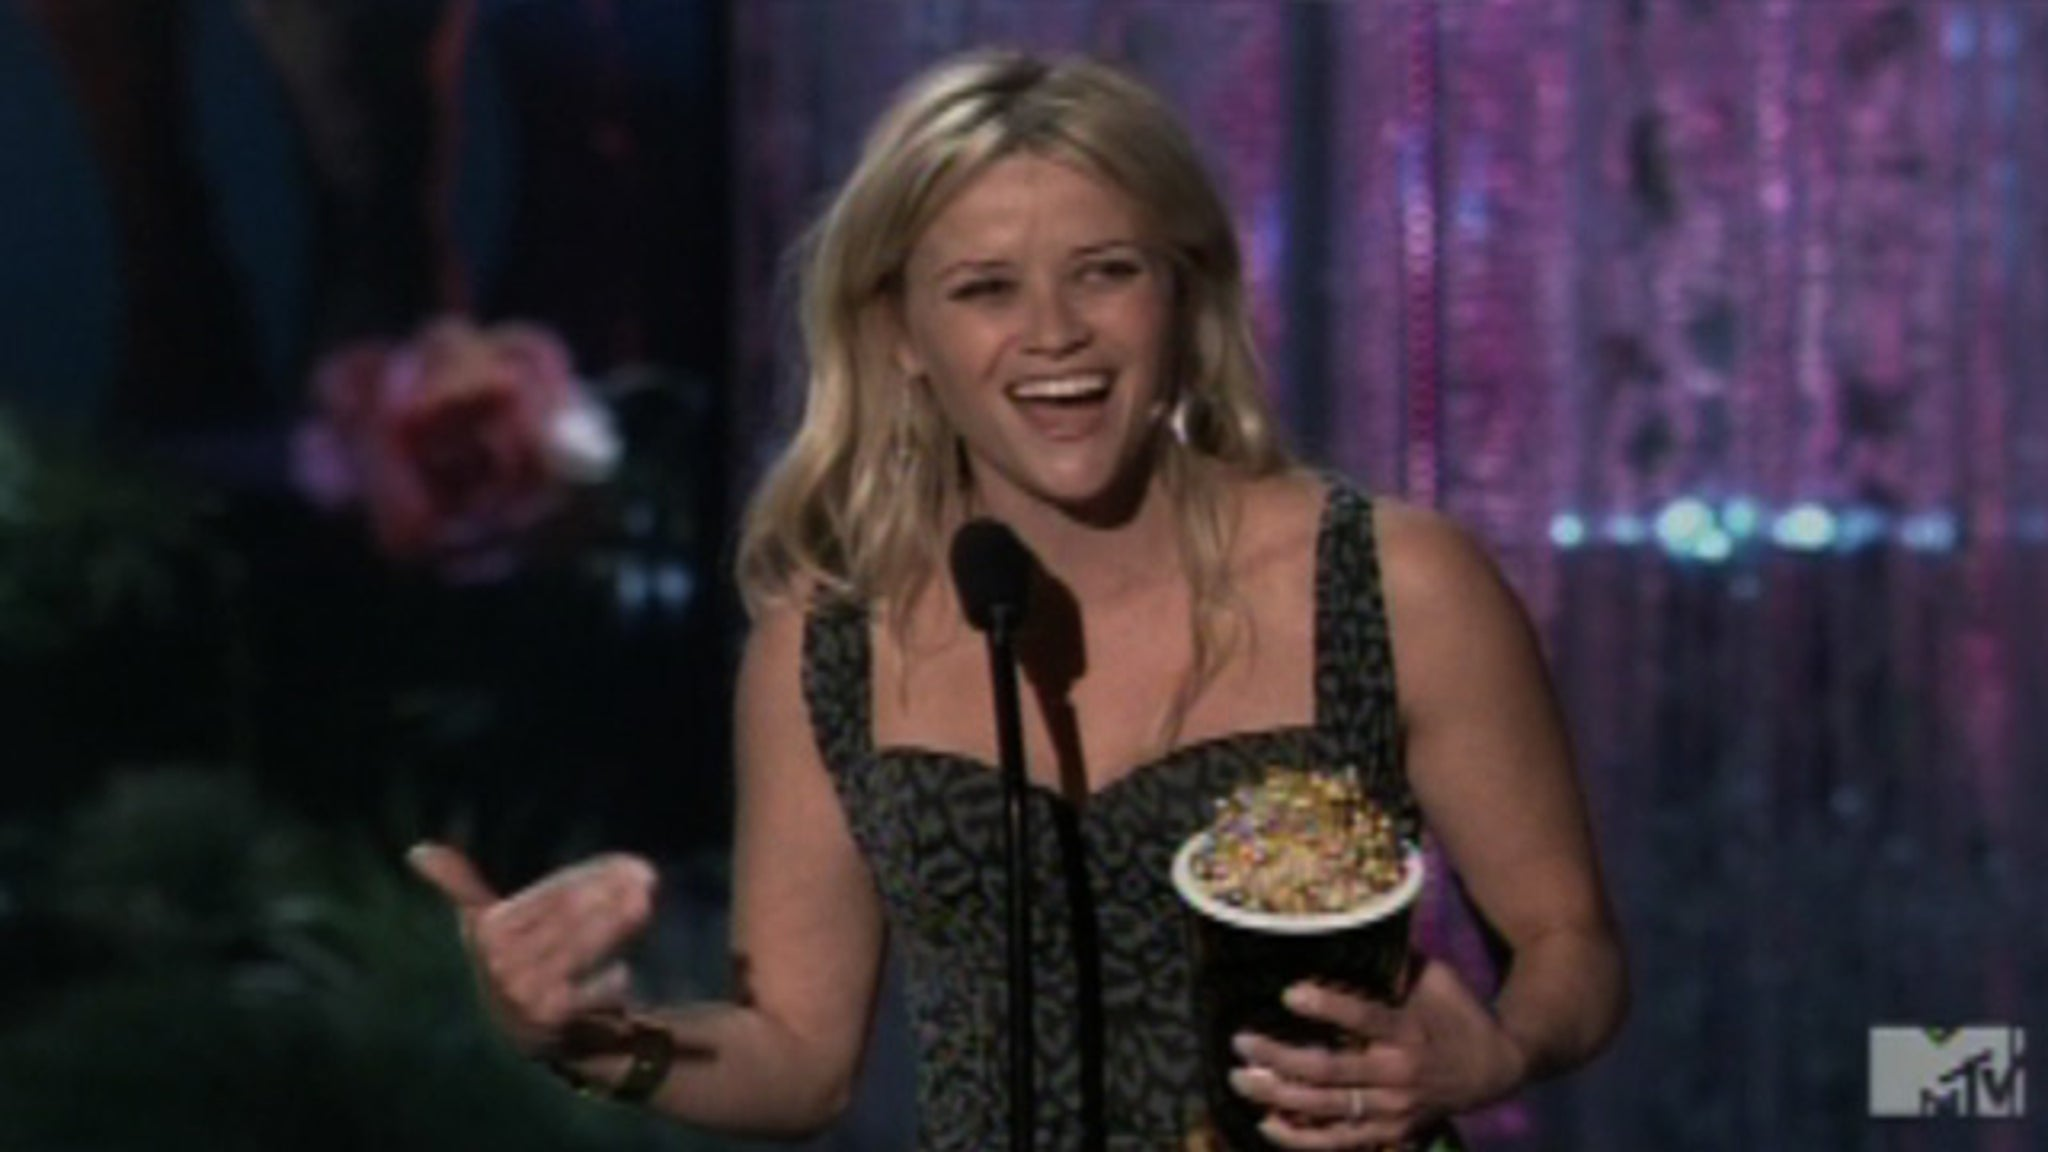 [VIDEO] MTV Movie Awards -- Reese Witherspoon ATTACKS